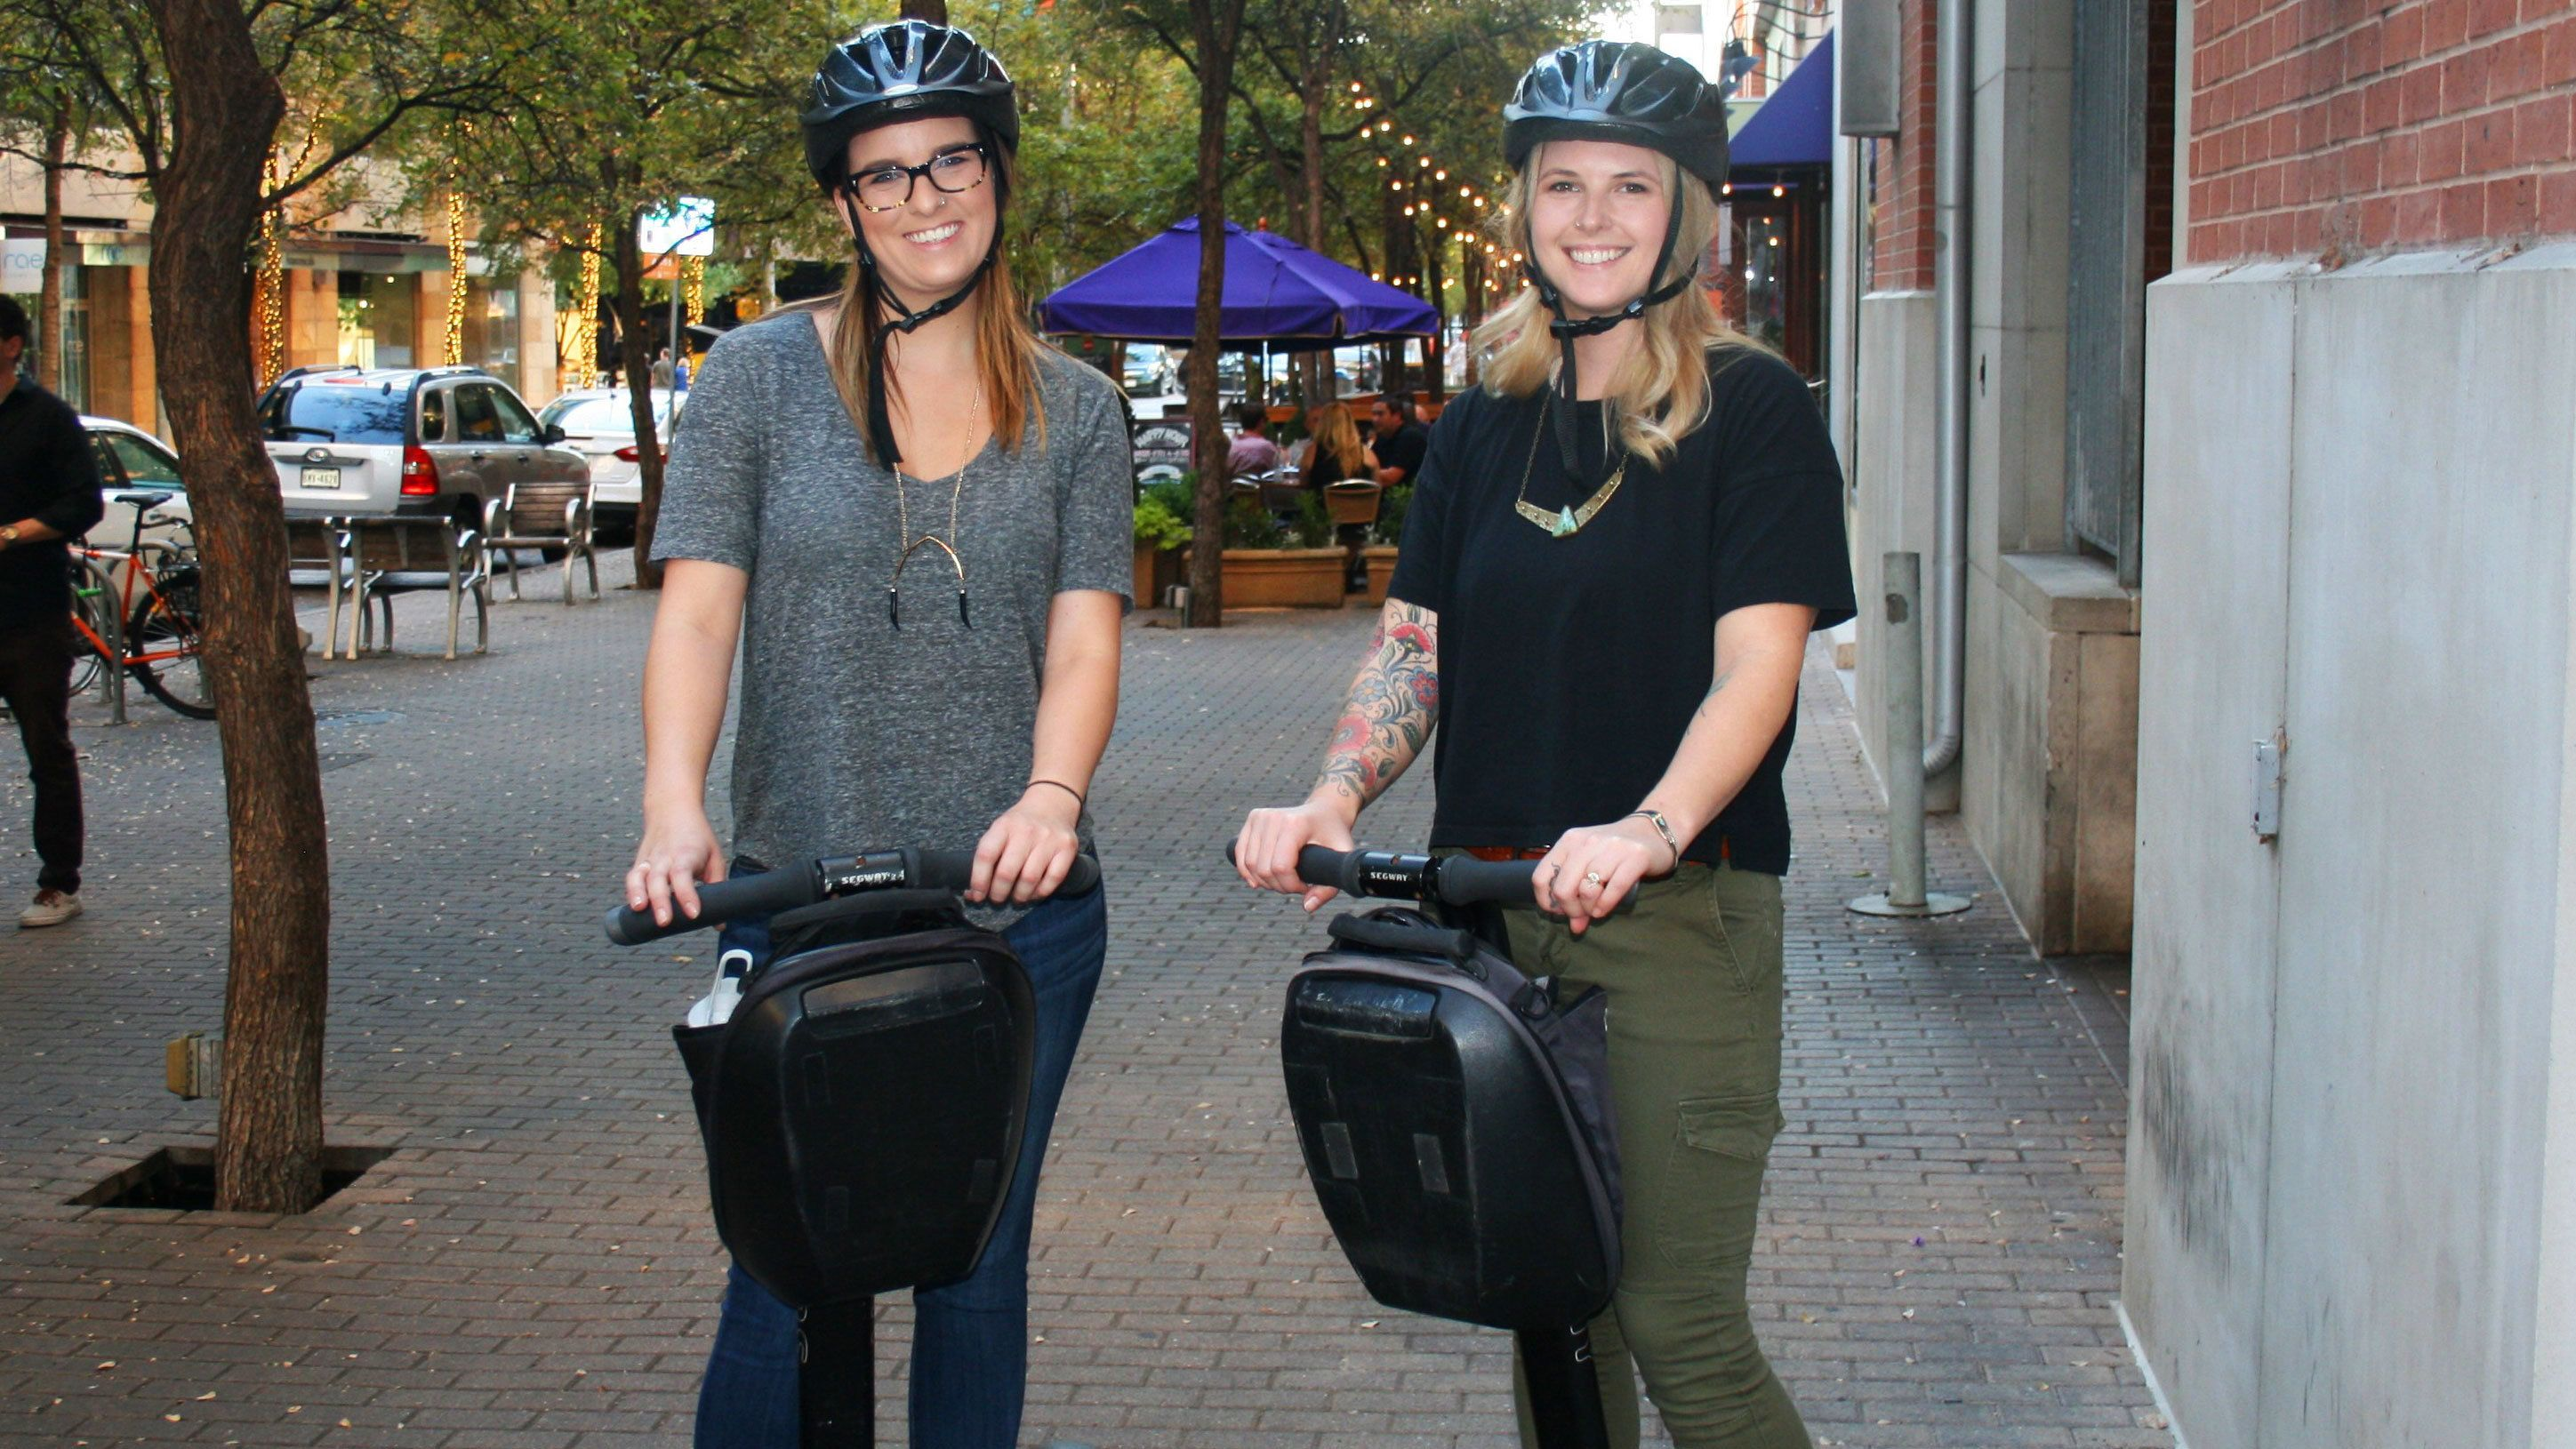 Historic Downtown Fort Worth Segway Tour